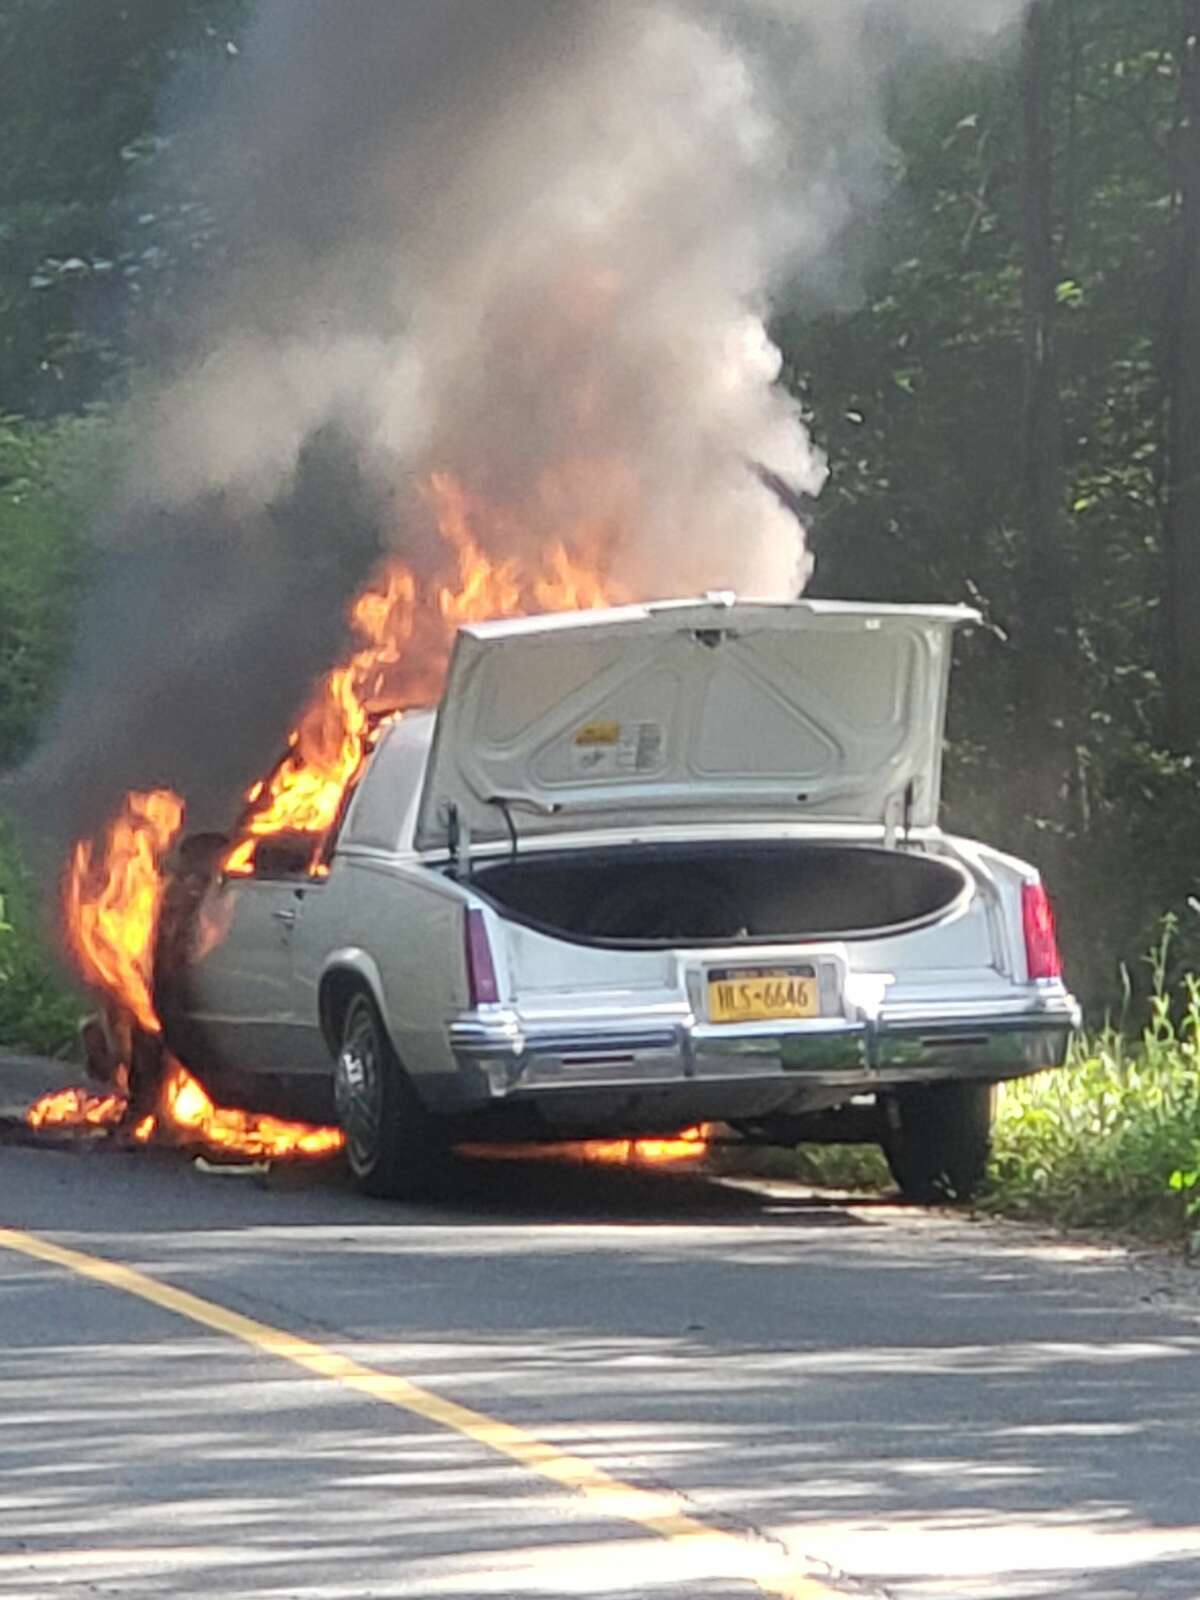 Just before 5 p.m. on Wednesday, July 24, 2019, a car became engulfed in flames on Pine Hill Road in New Fairfield. The New Fairfield Volunteer Fire Department and police responded and found the vehicle in flames.